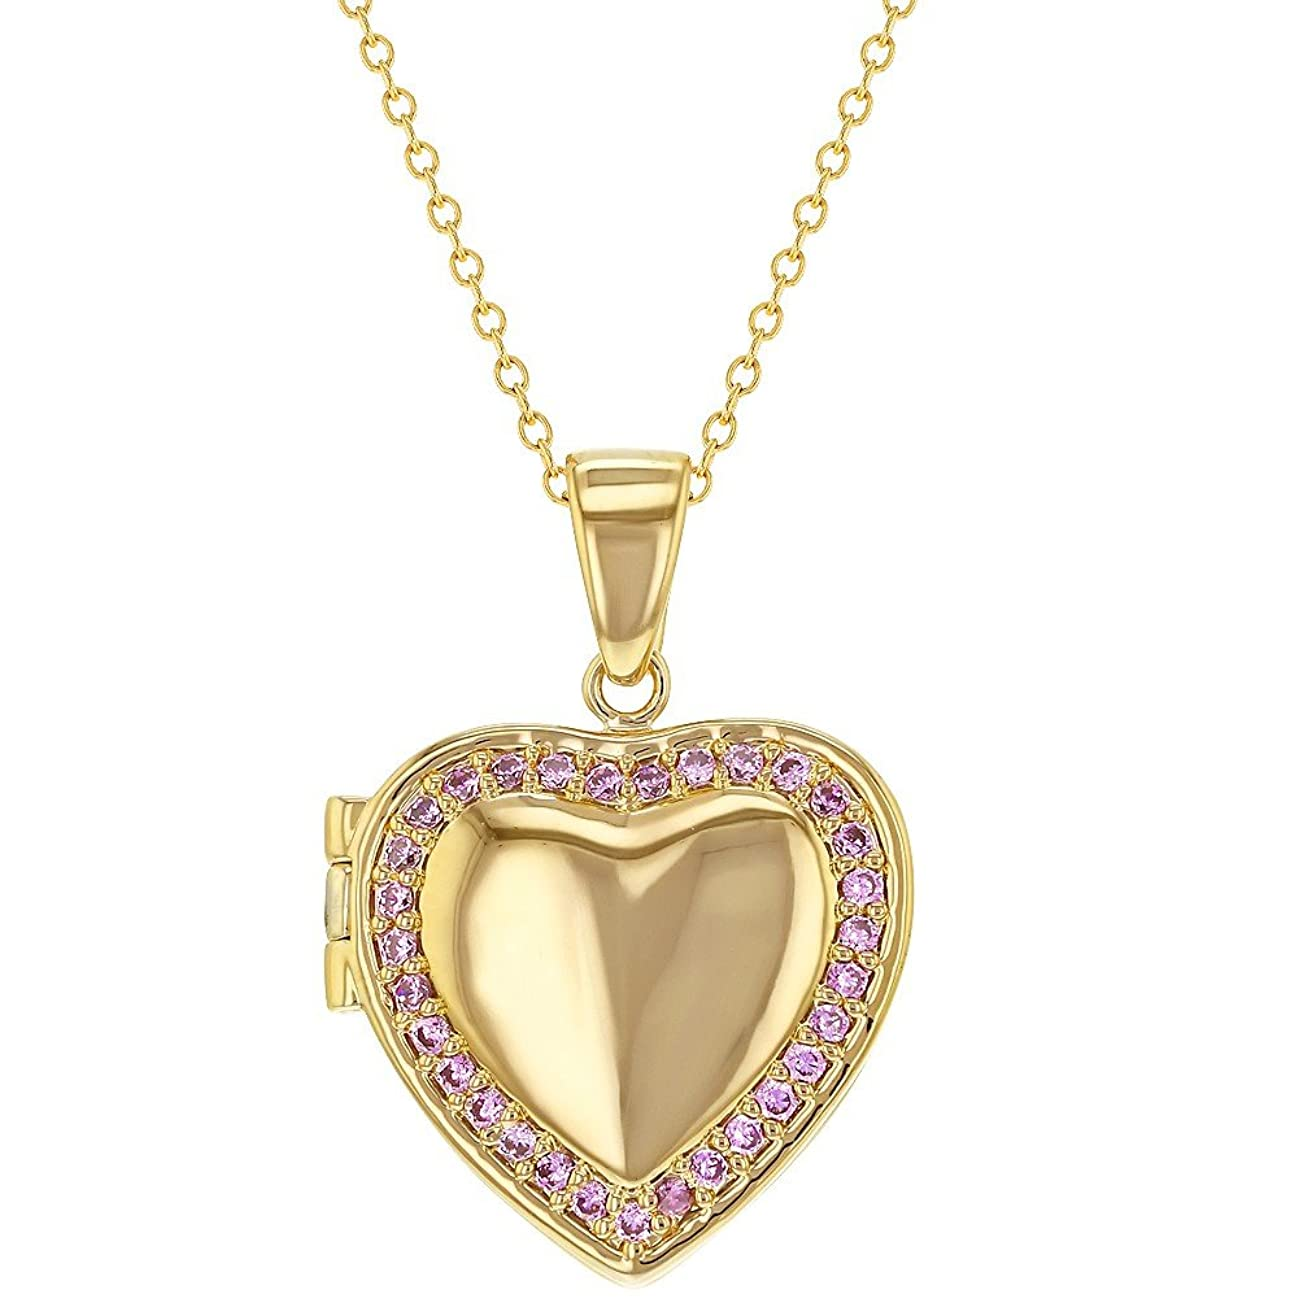 In Season Jewelry 18k Gold Plated Pink Crystal Heart Shaped Photo Locket Pendant Necklace 19